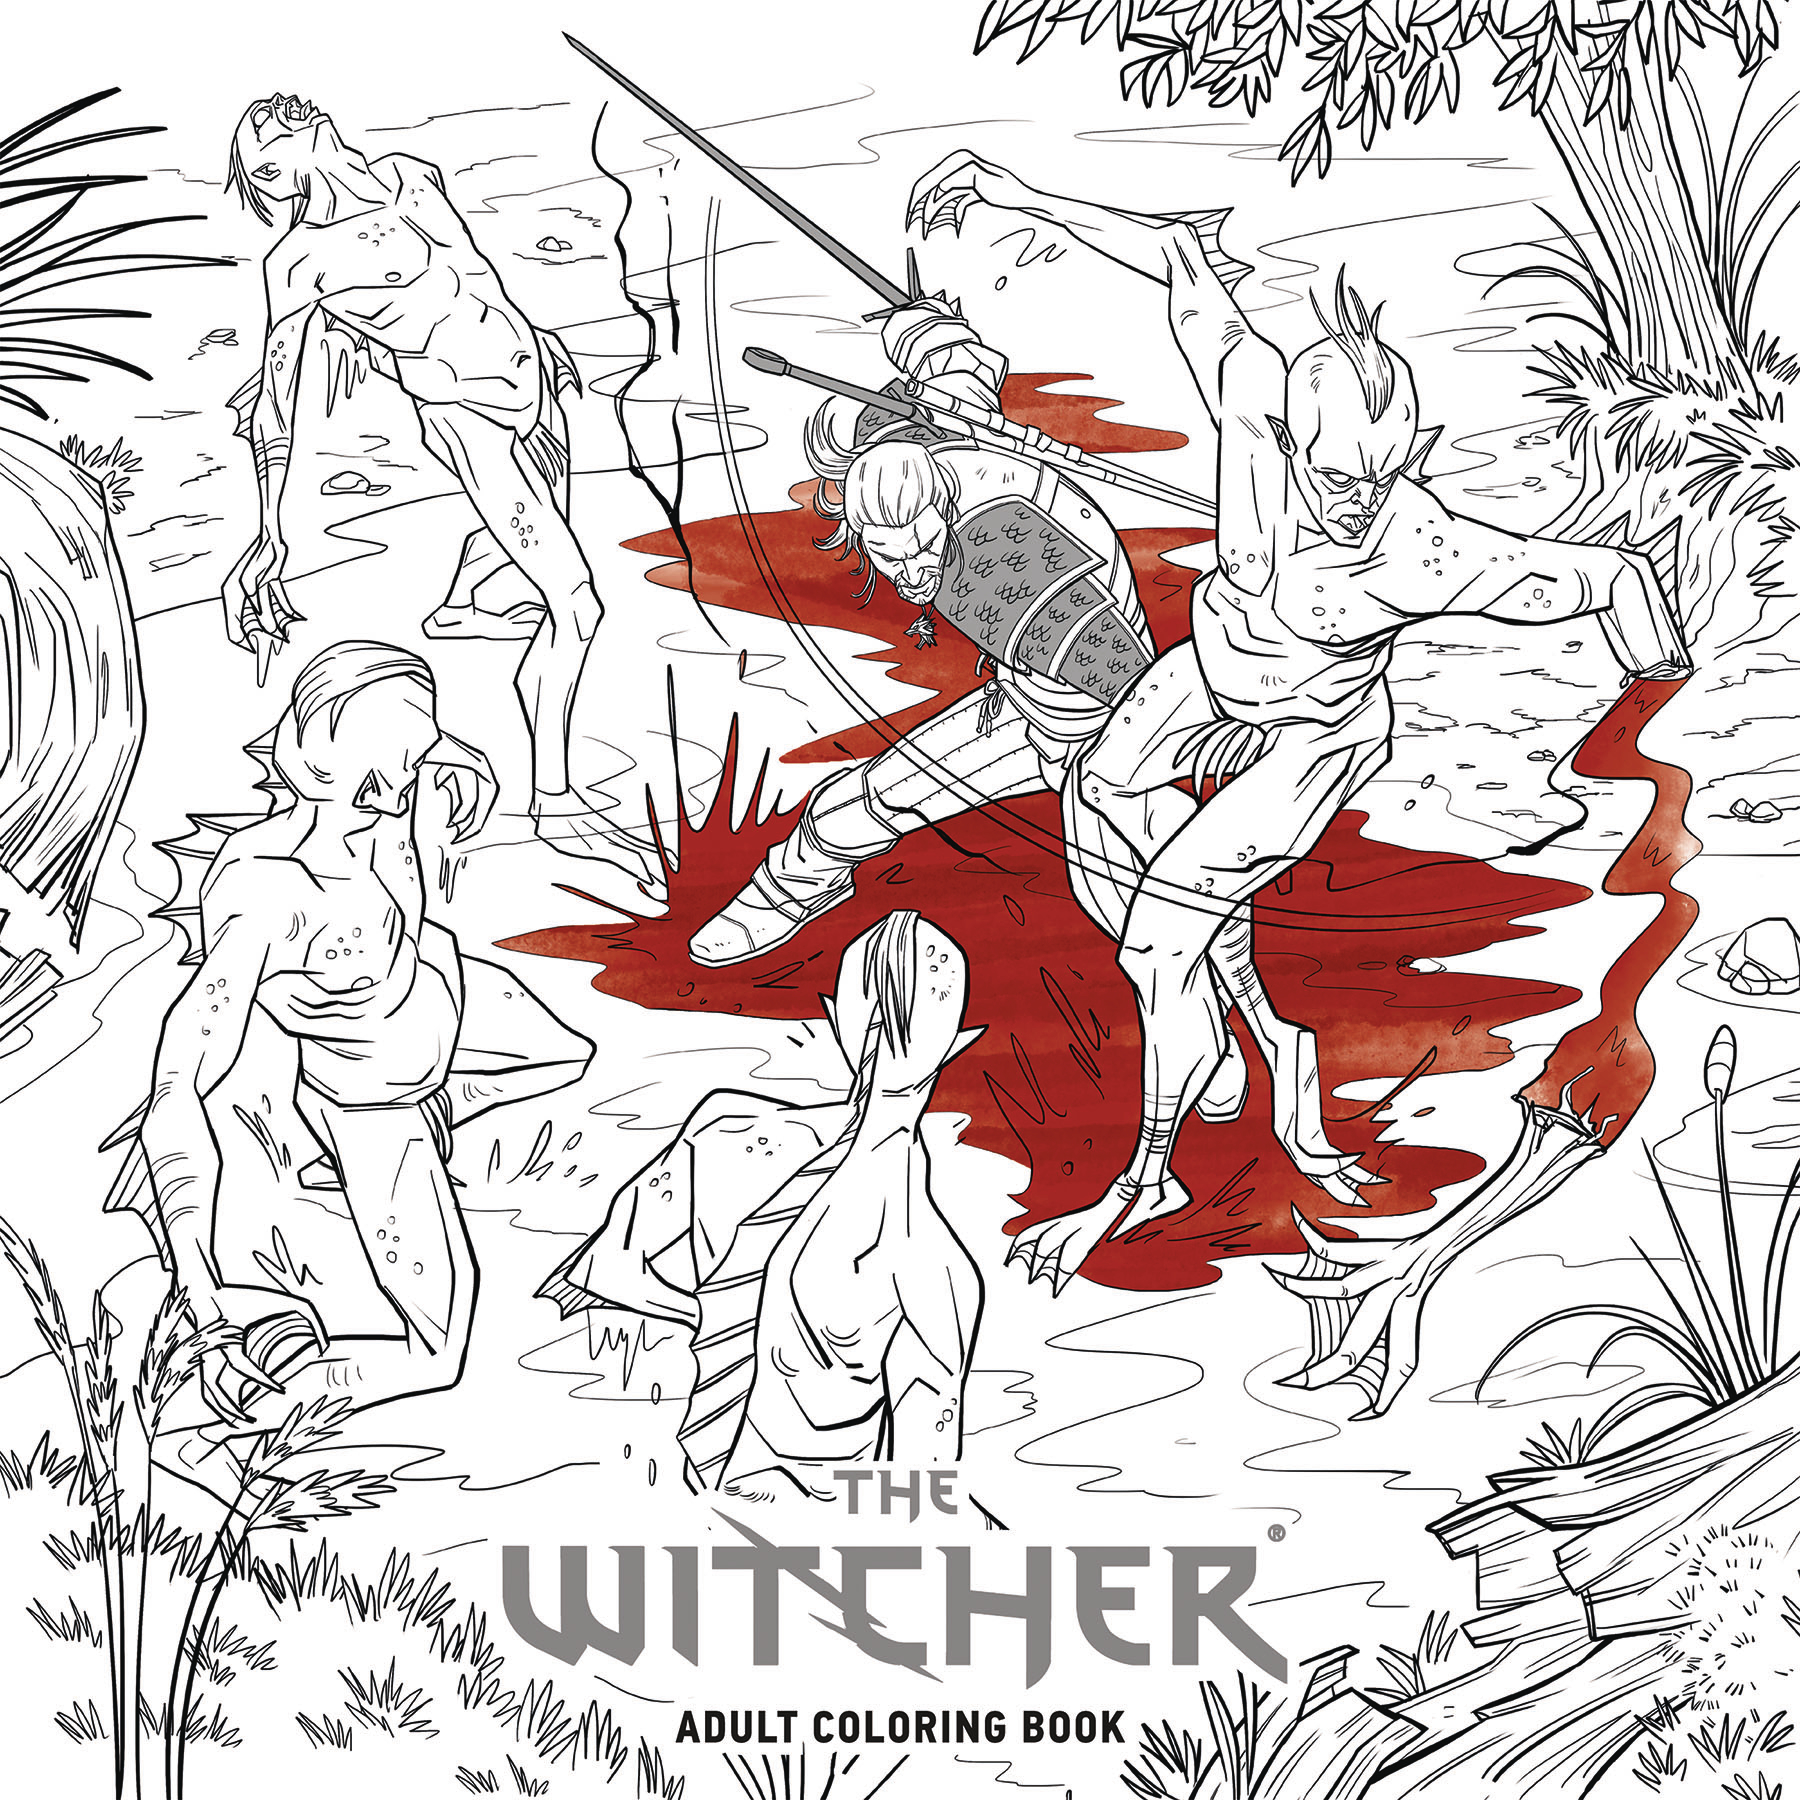 WITCHER ADULT COLORING BOOK TP (AUG170067)